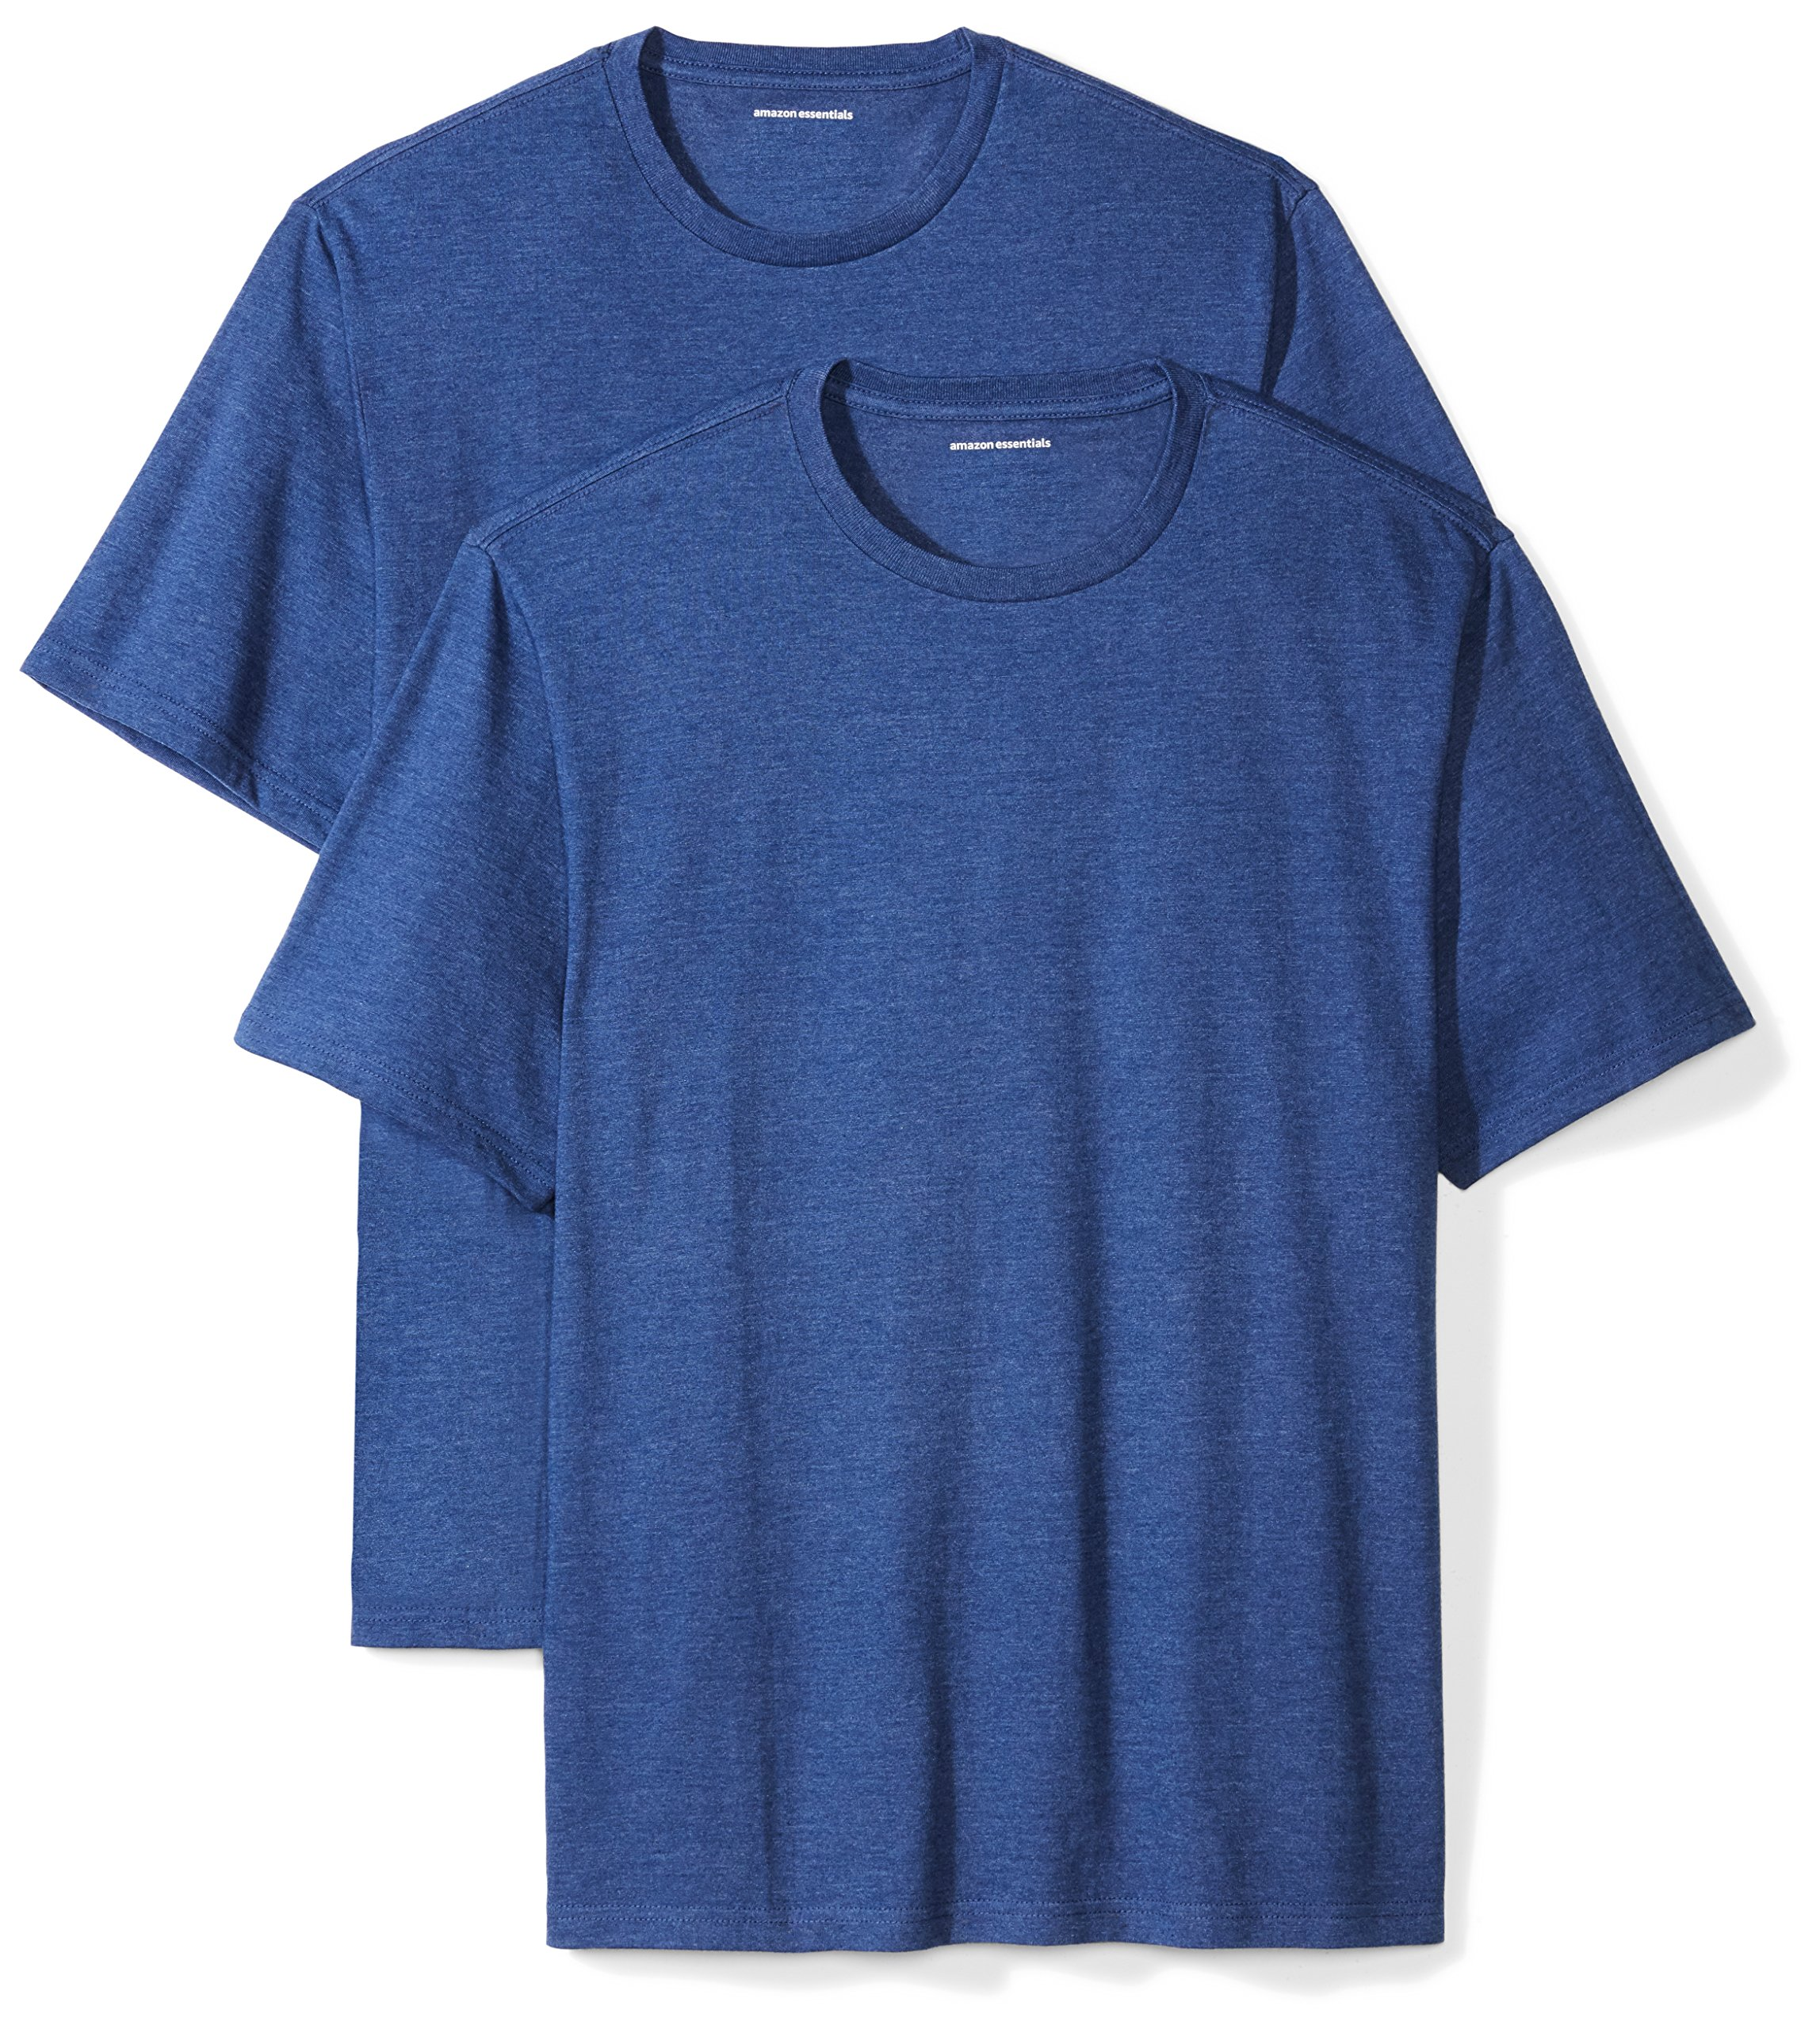 Amazon Essentials Men's 2-Pack Loose-Fit Short-Sleeve Crewneck T-Shirts, Navy Heather, Small